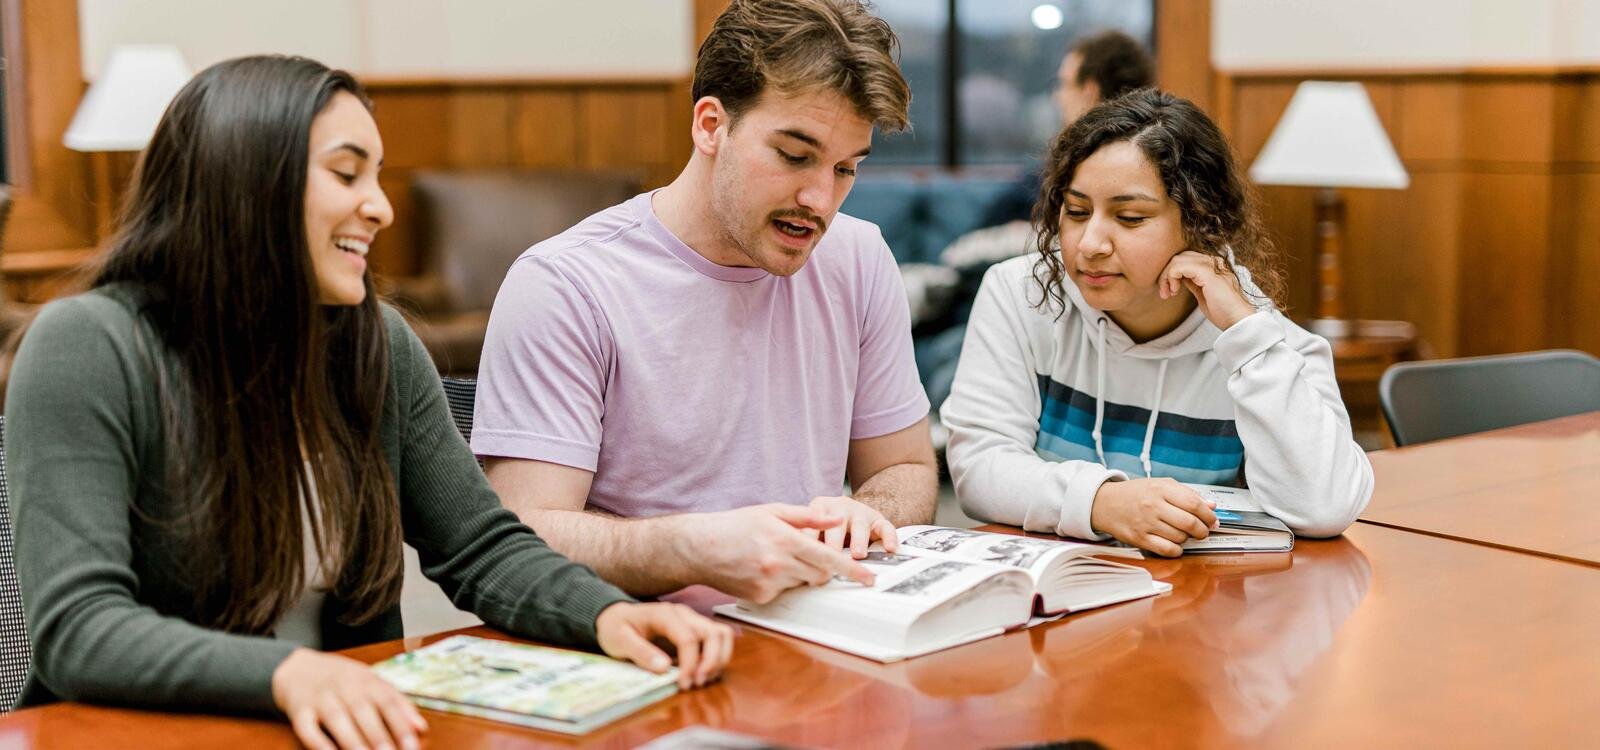 Three students look at a book as they sit at a rectangular table in the pechero student lounge